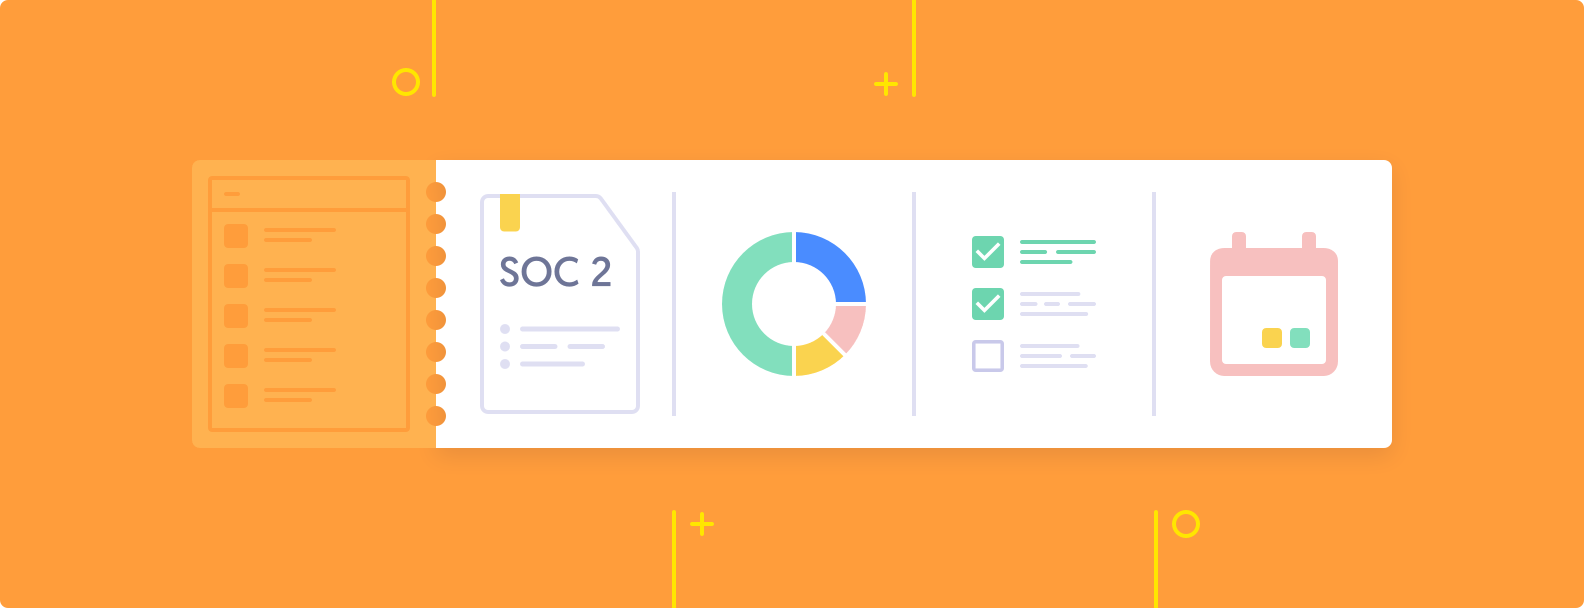 SOC 2 compliance: What it is and how to achieve it